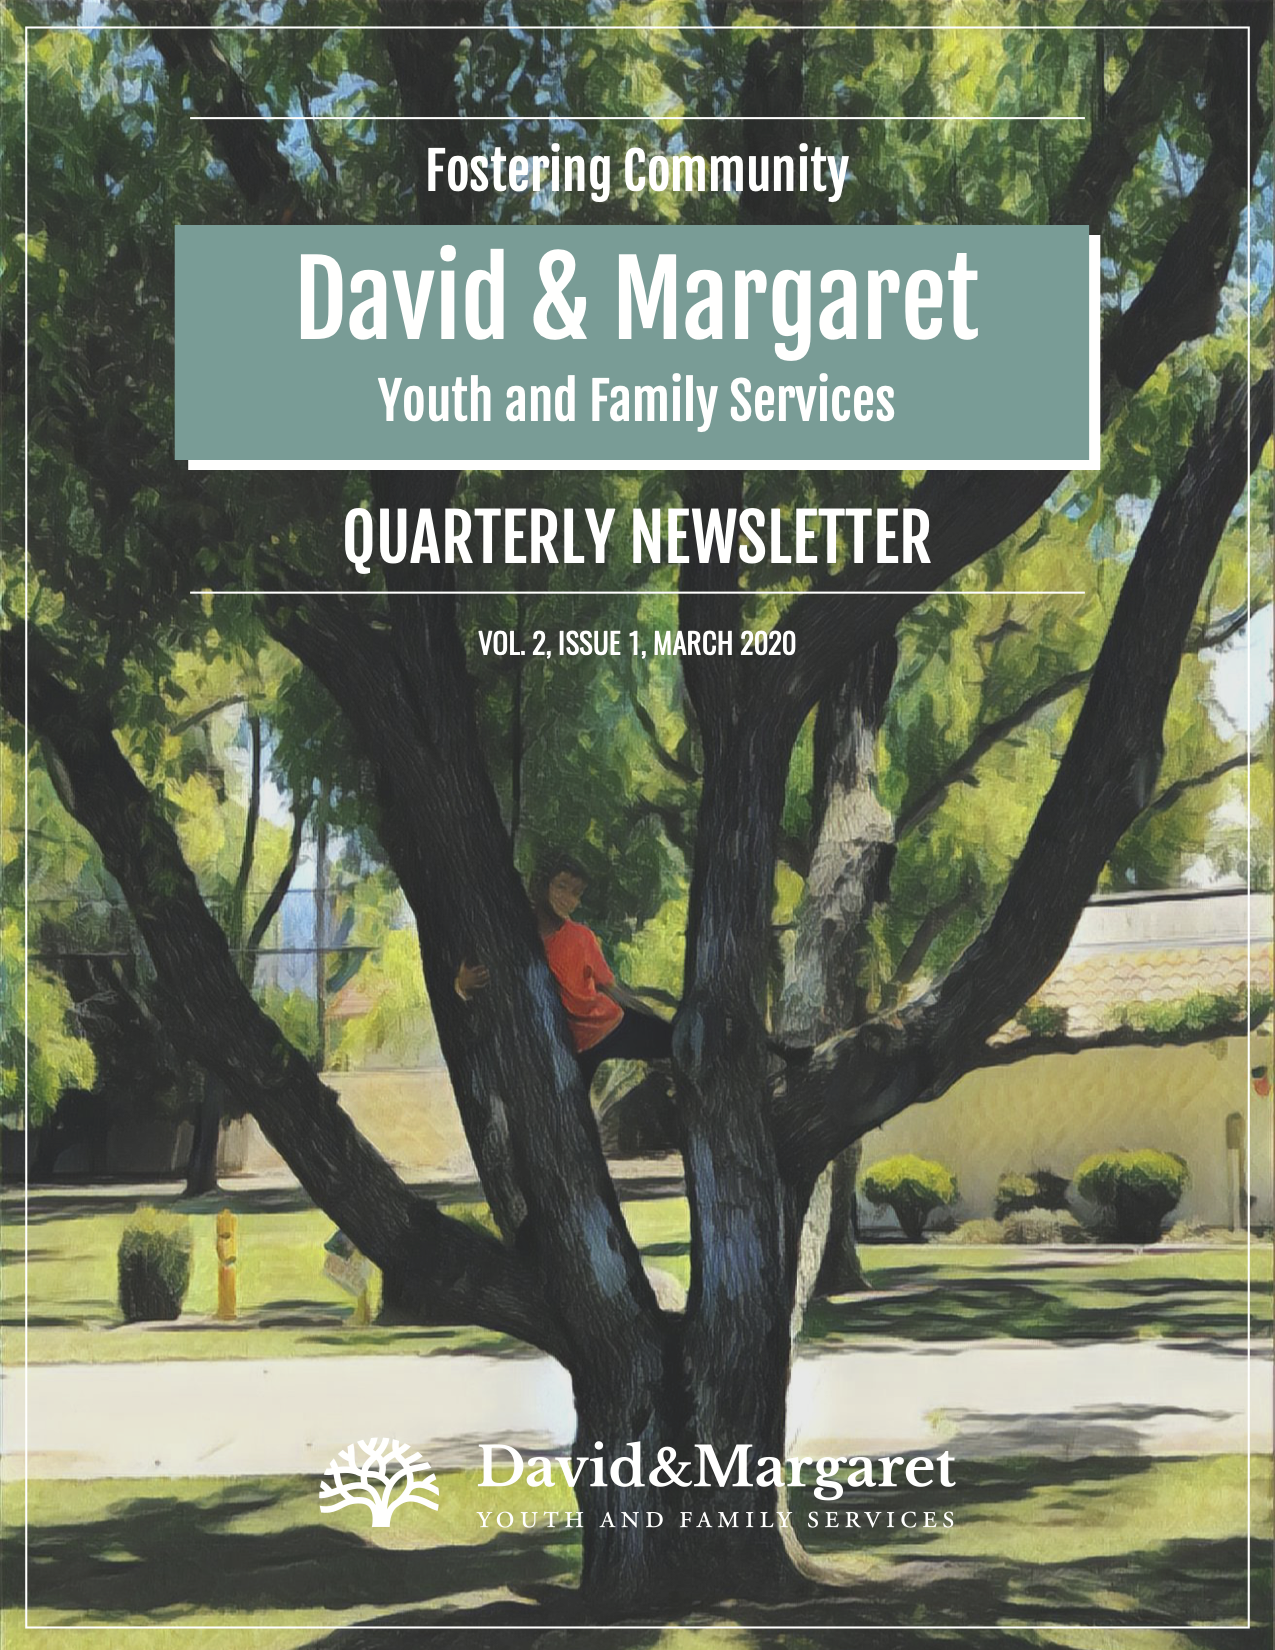 David & Margaret Youth and Family Services Quarterly Newsletter Vol. 2 Issue 1 2020